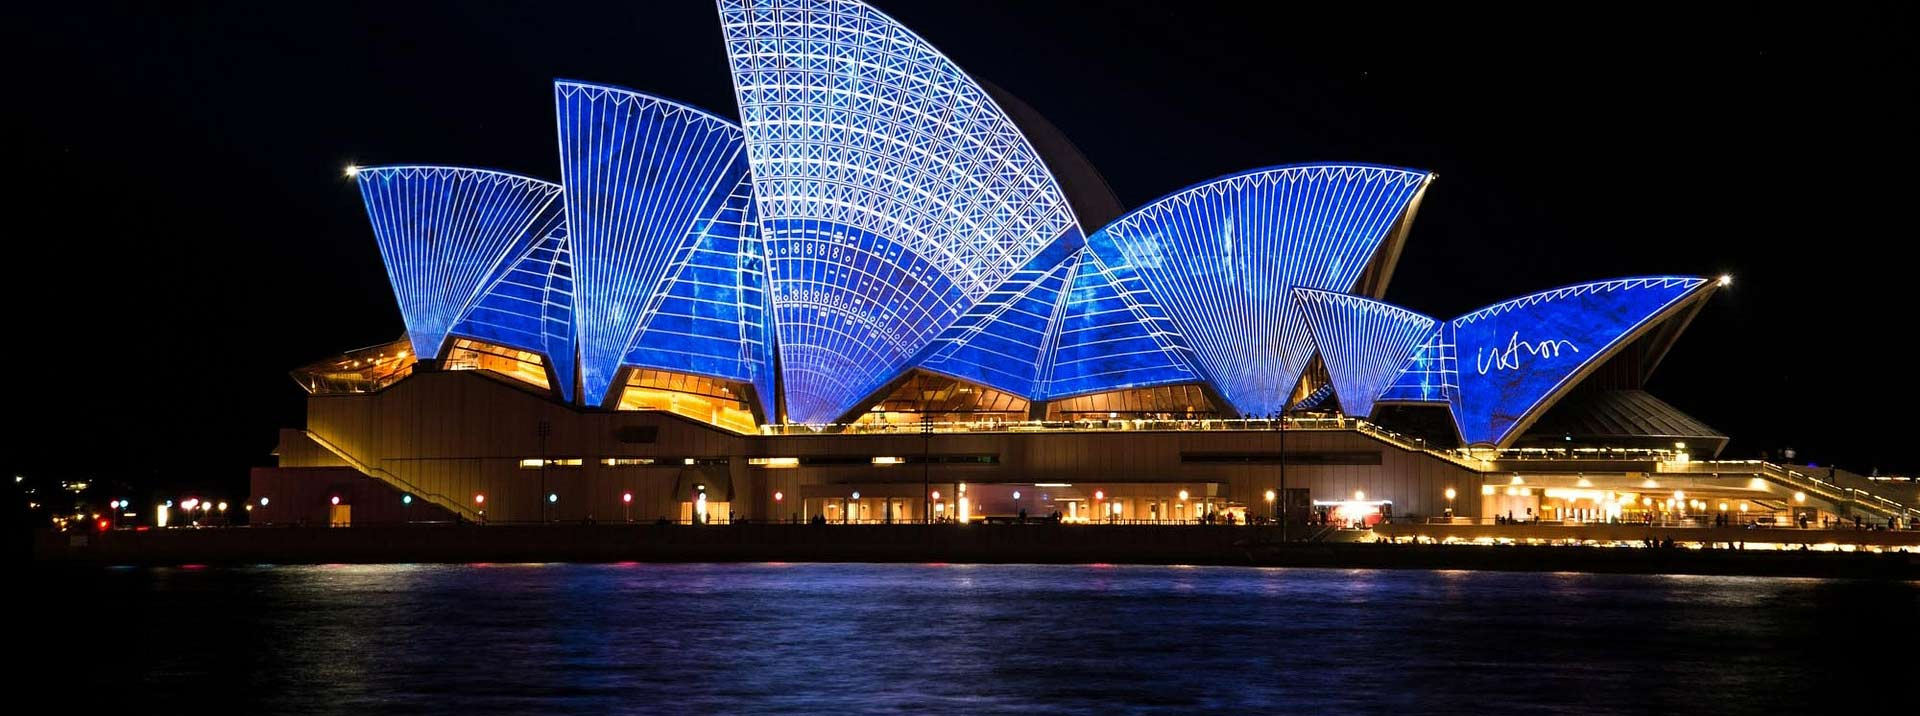 Discounted flight tickets from New York to Sydney - IFlyFirstClass